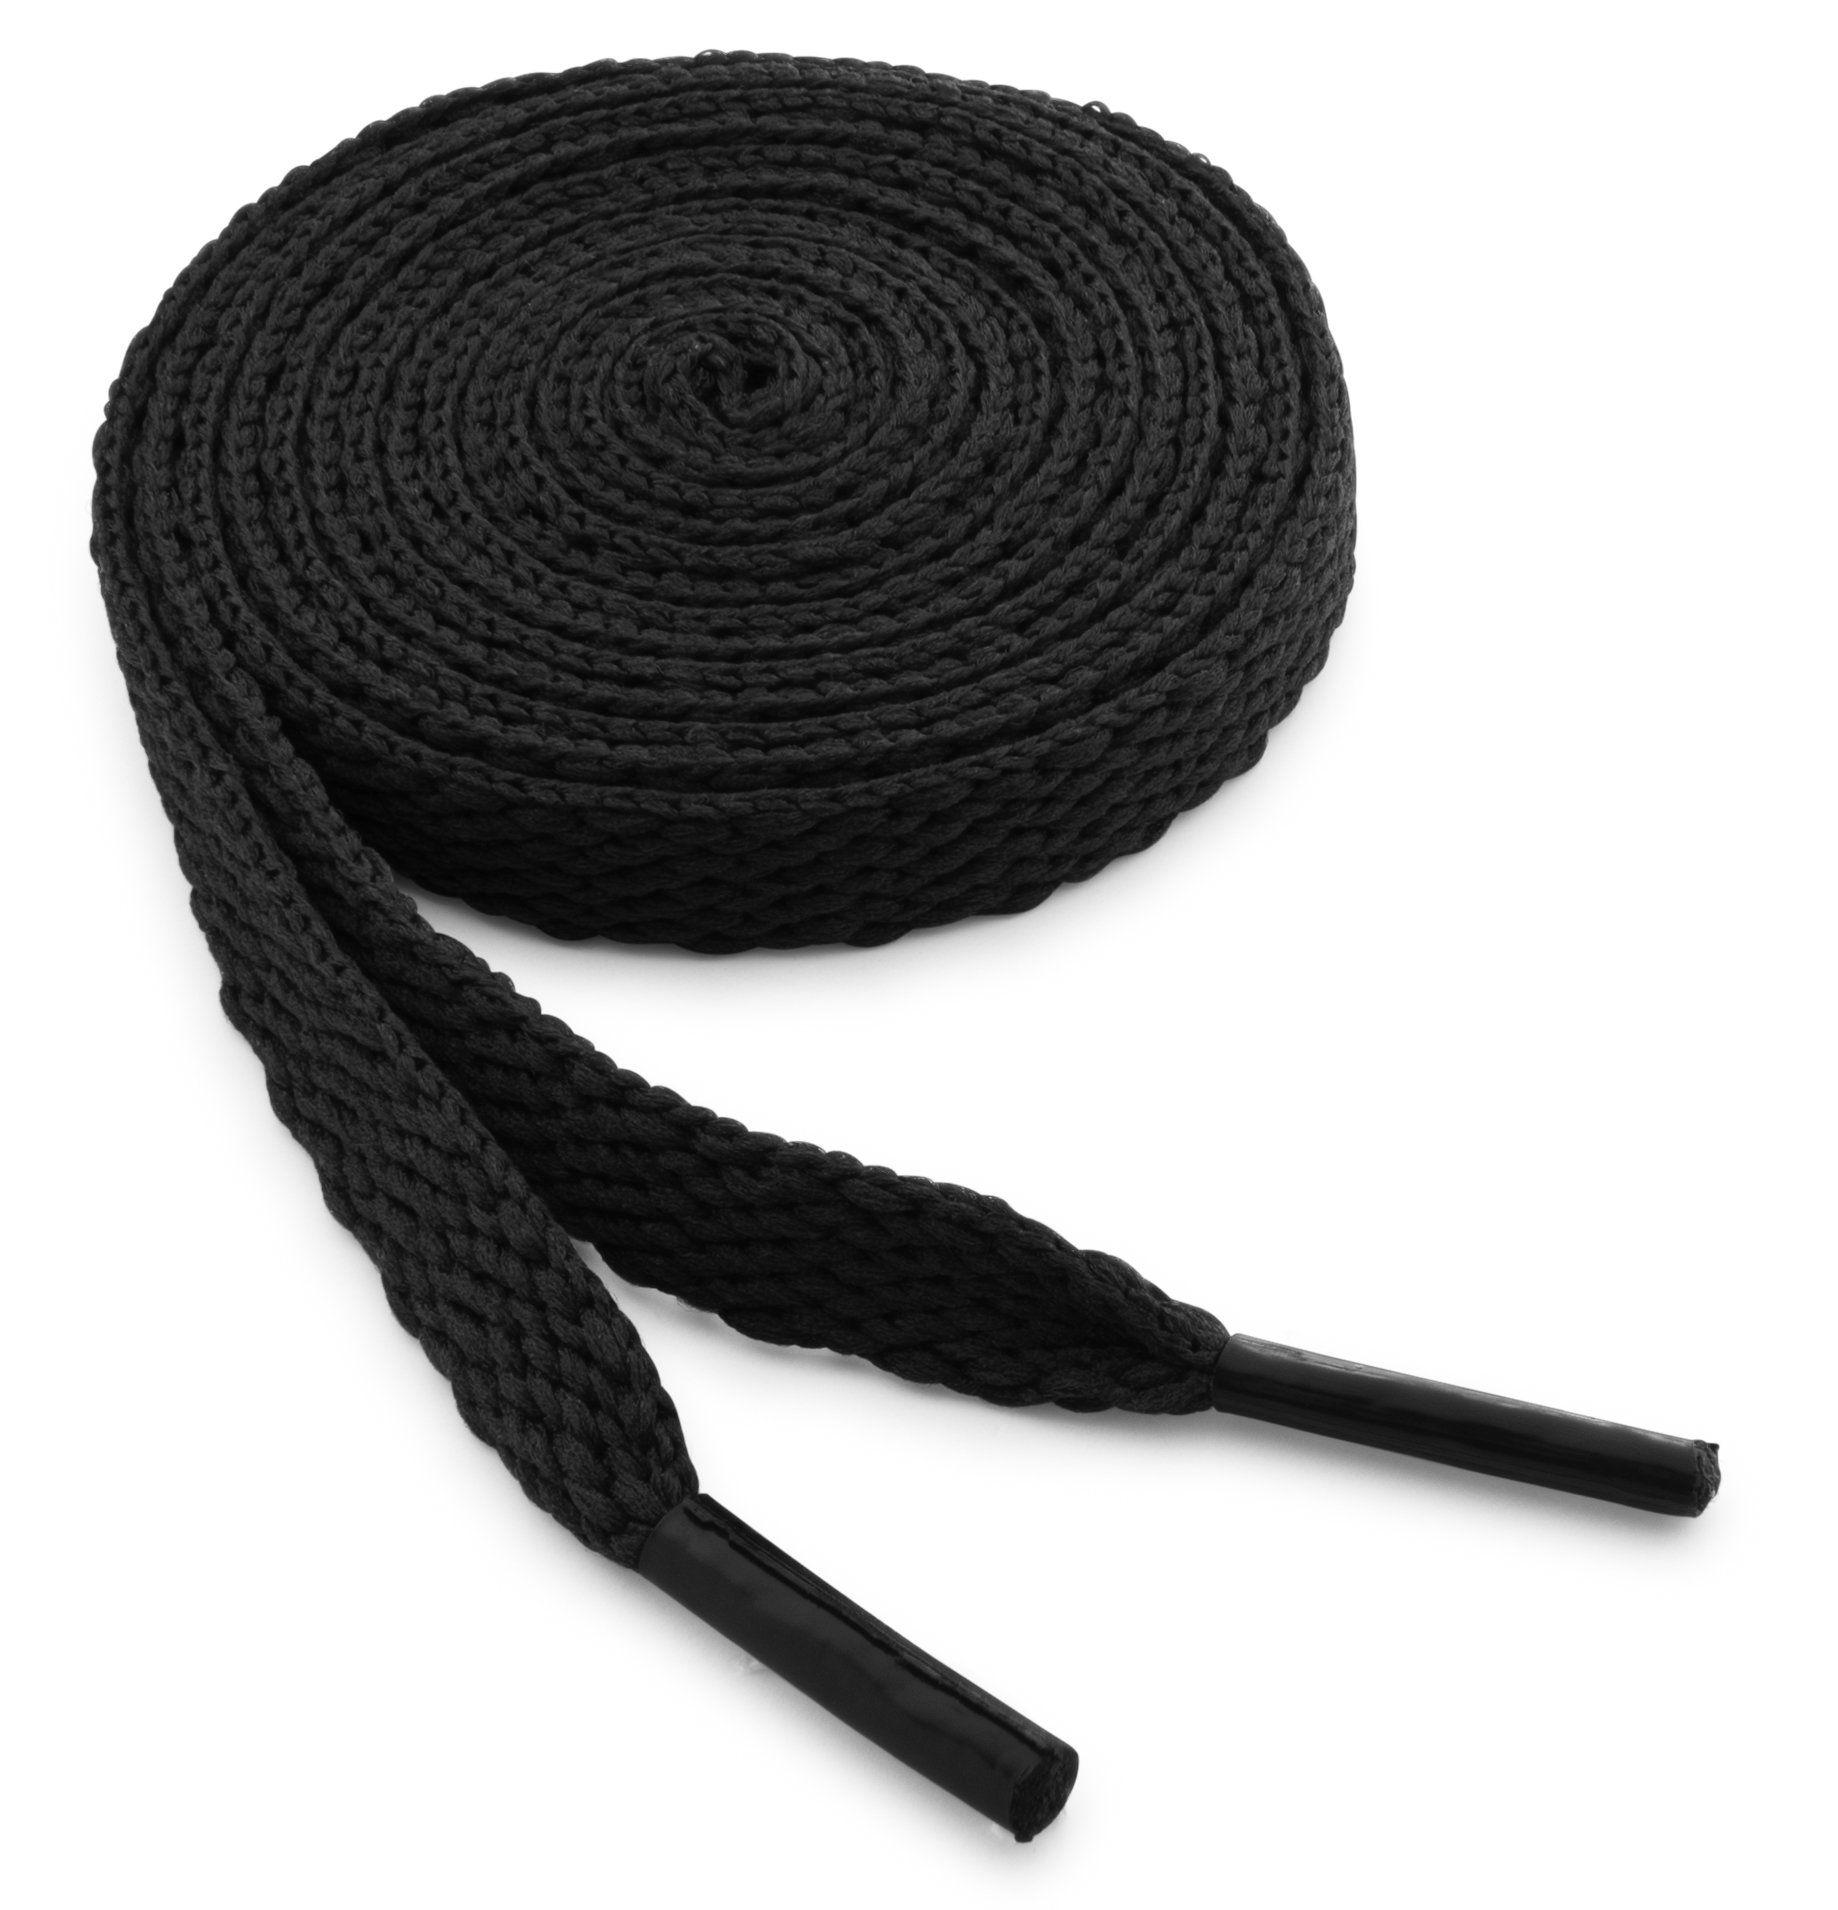 94f782eaaba10 Best Rated in Shoelaces & Helpful Customer Reviews - Amazon.com